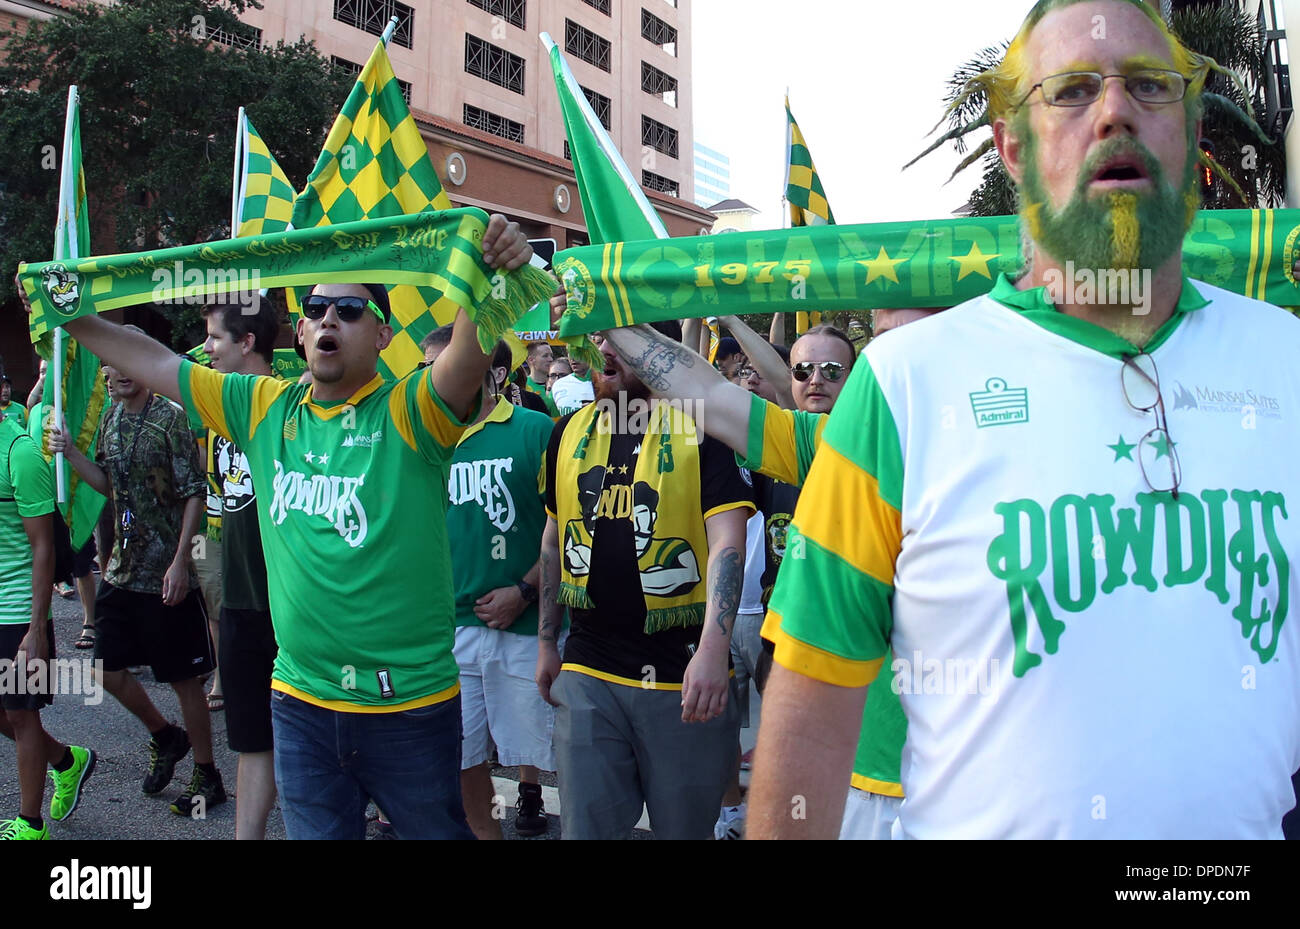 tampa bay rowdies supporters head to the al lang stadium st stock photo alamy https www alamy com tampa bay rowdies supporters head to the al lang stadium st petersburg image65455587 html